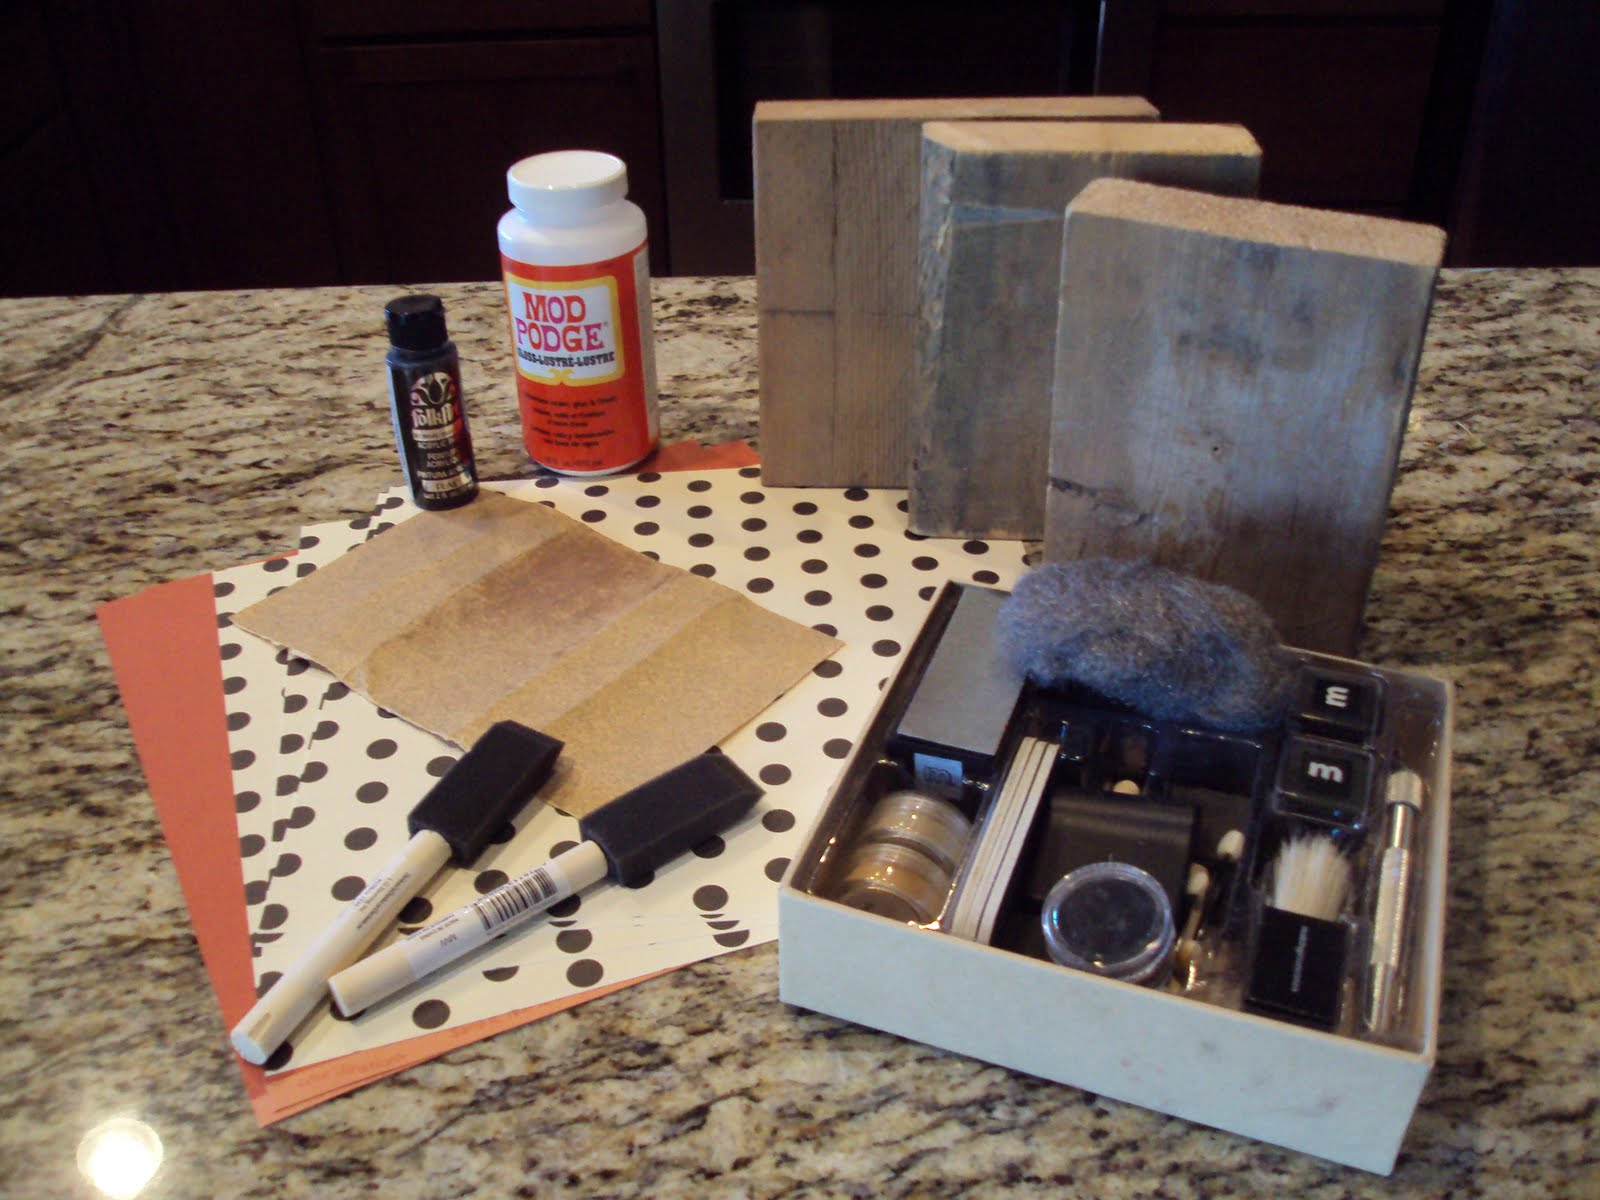 How to put scrapbook paper on wood - For This Project You Will Need Halloween Scrapbook Paper Blocks Of Wood Sand Paper Black Paint Mod Podge Two Paint Brushes And Black Ink Or A